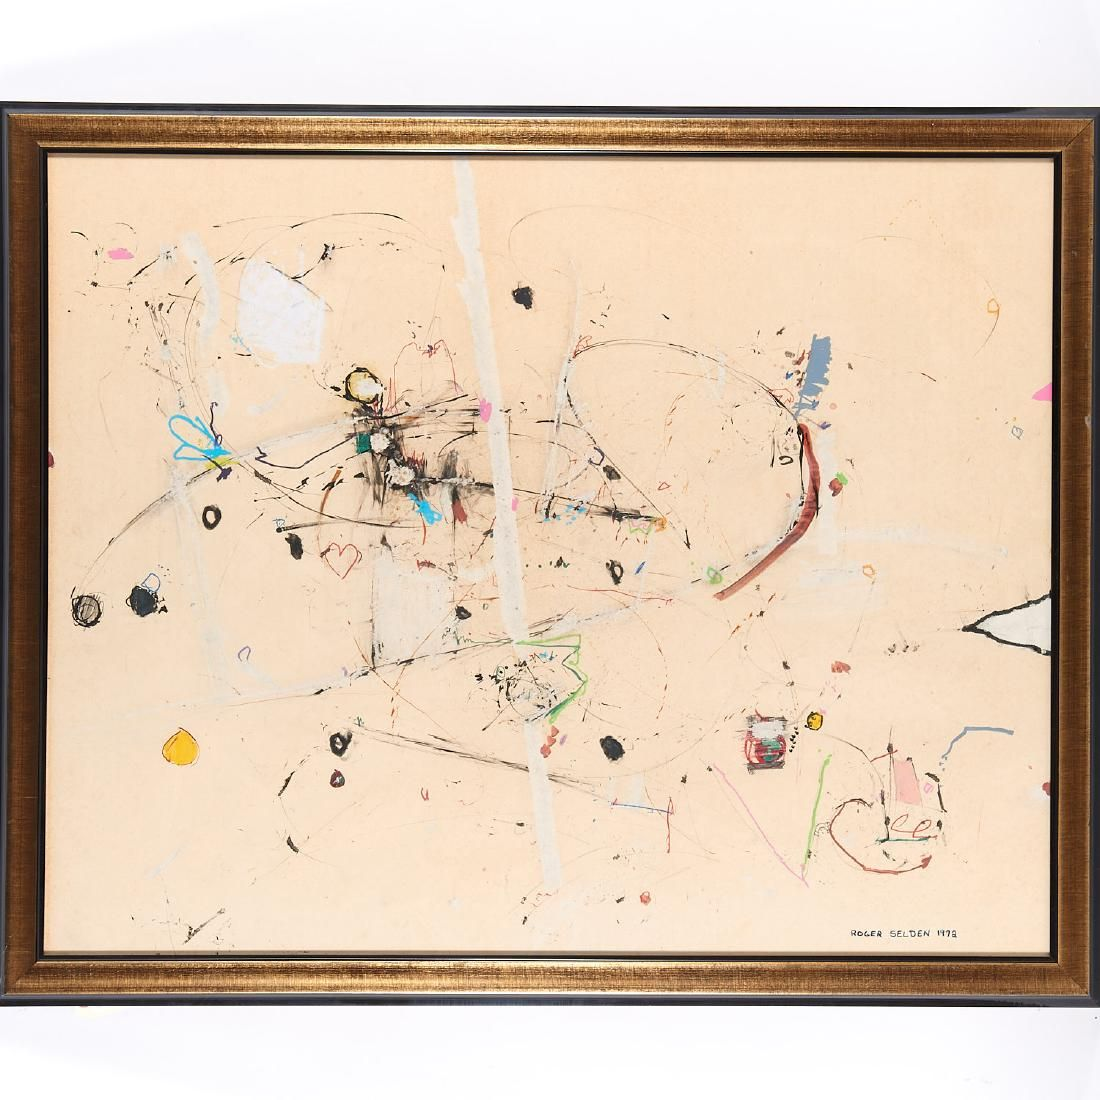 Roger Selden, mixed media painting